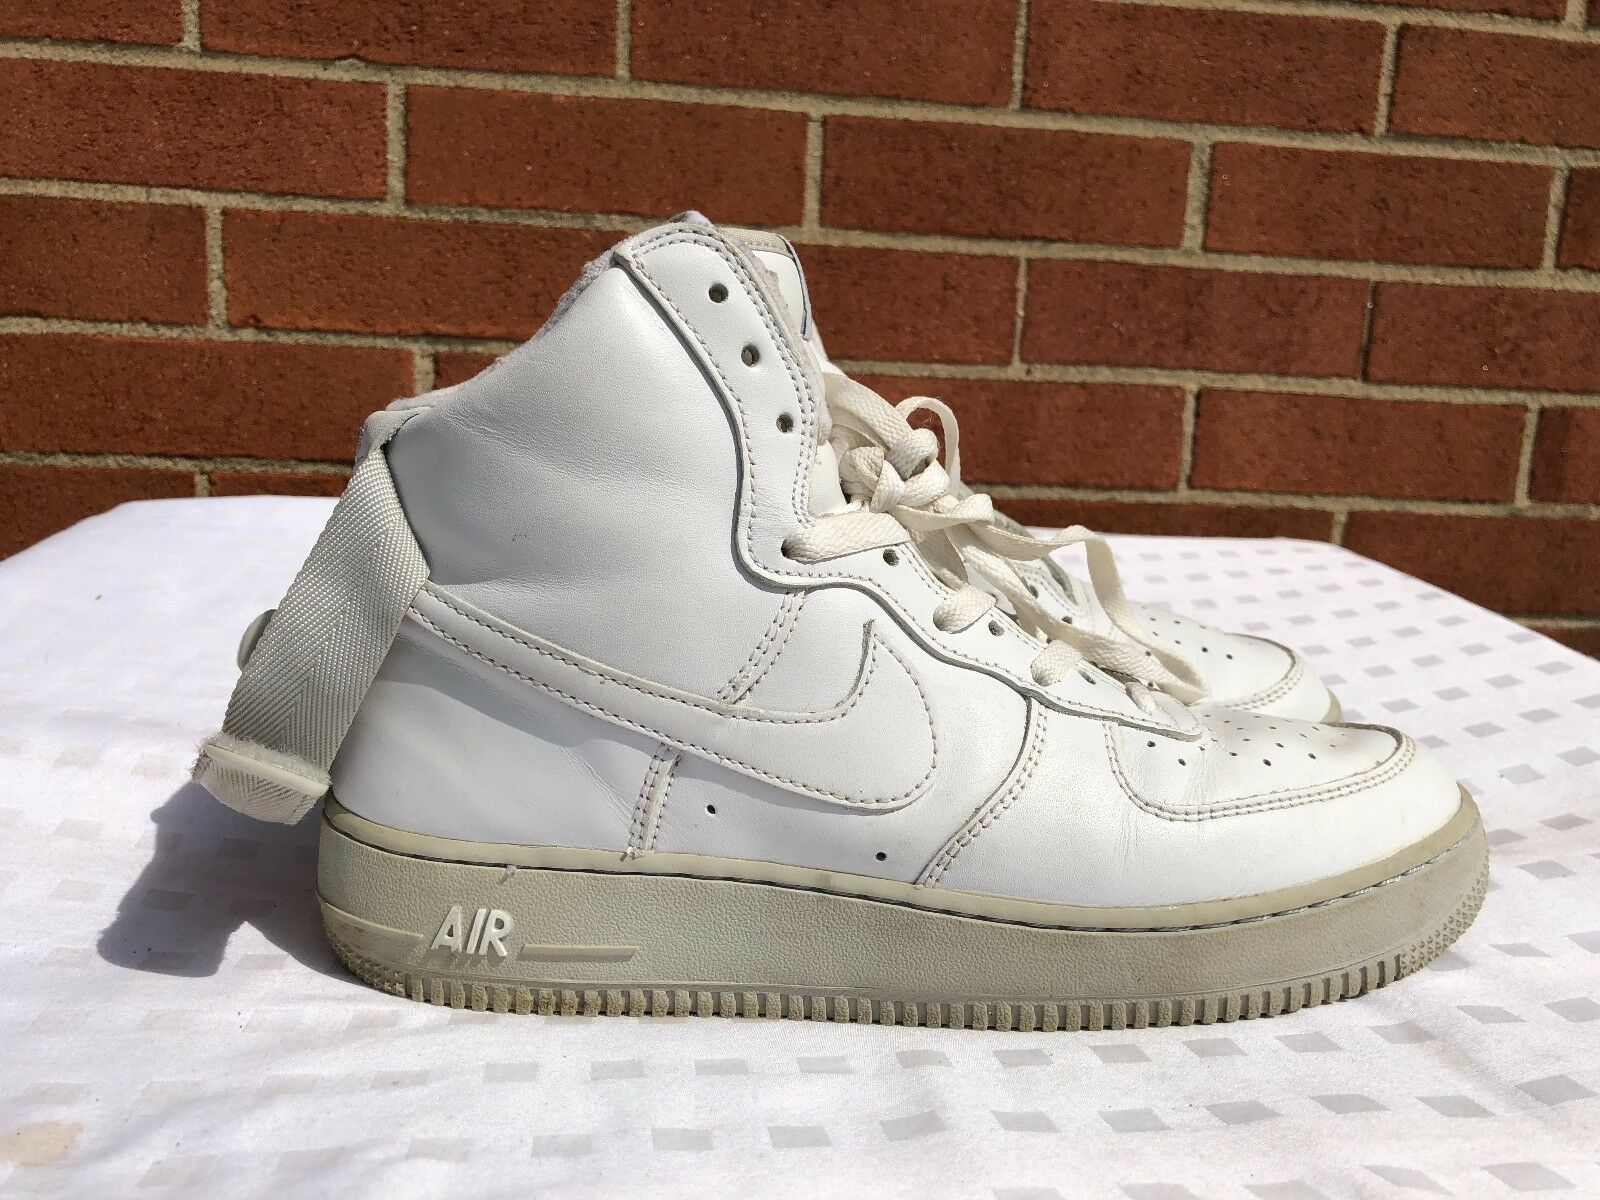 DS DS DS 2004 Nike Air Force 1 High White Gray 306351 111 size US 8.5 7c9545